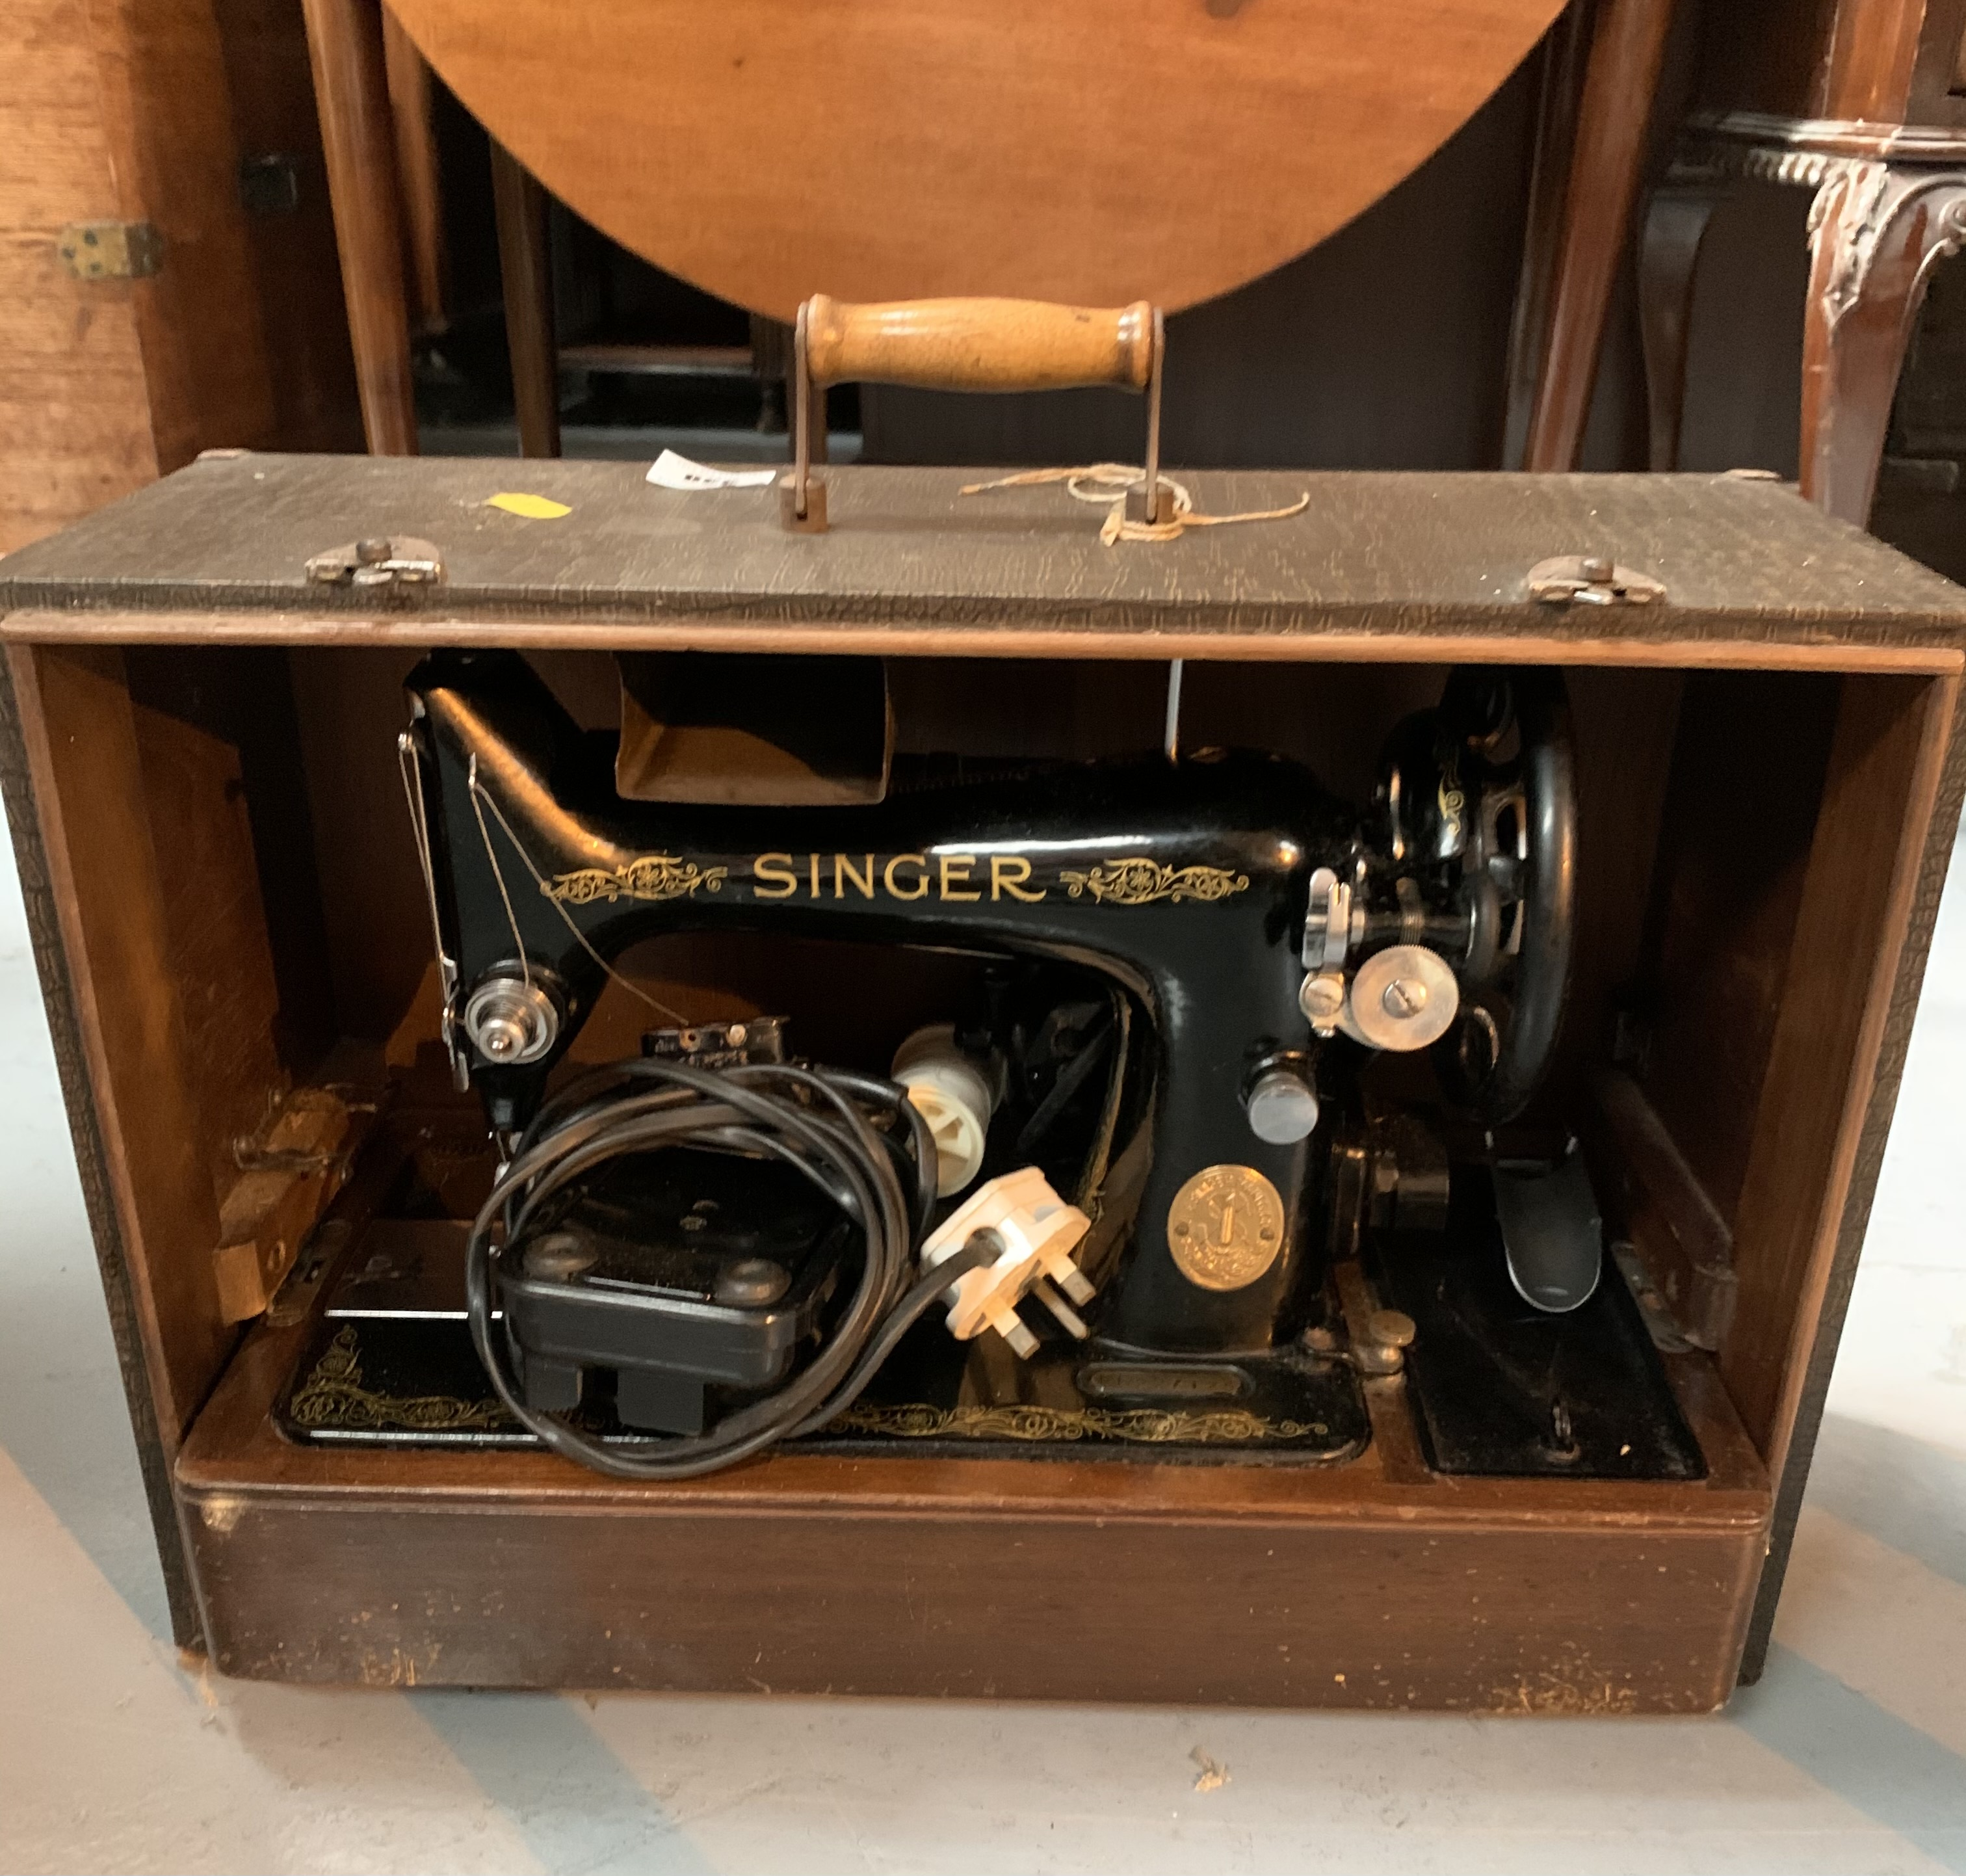 Singer sewing machine in case with accessories - Image 3 of 4